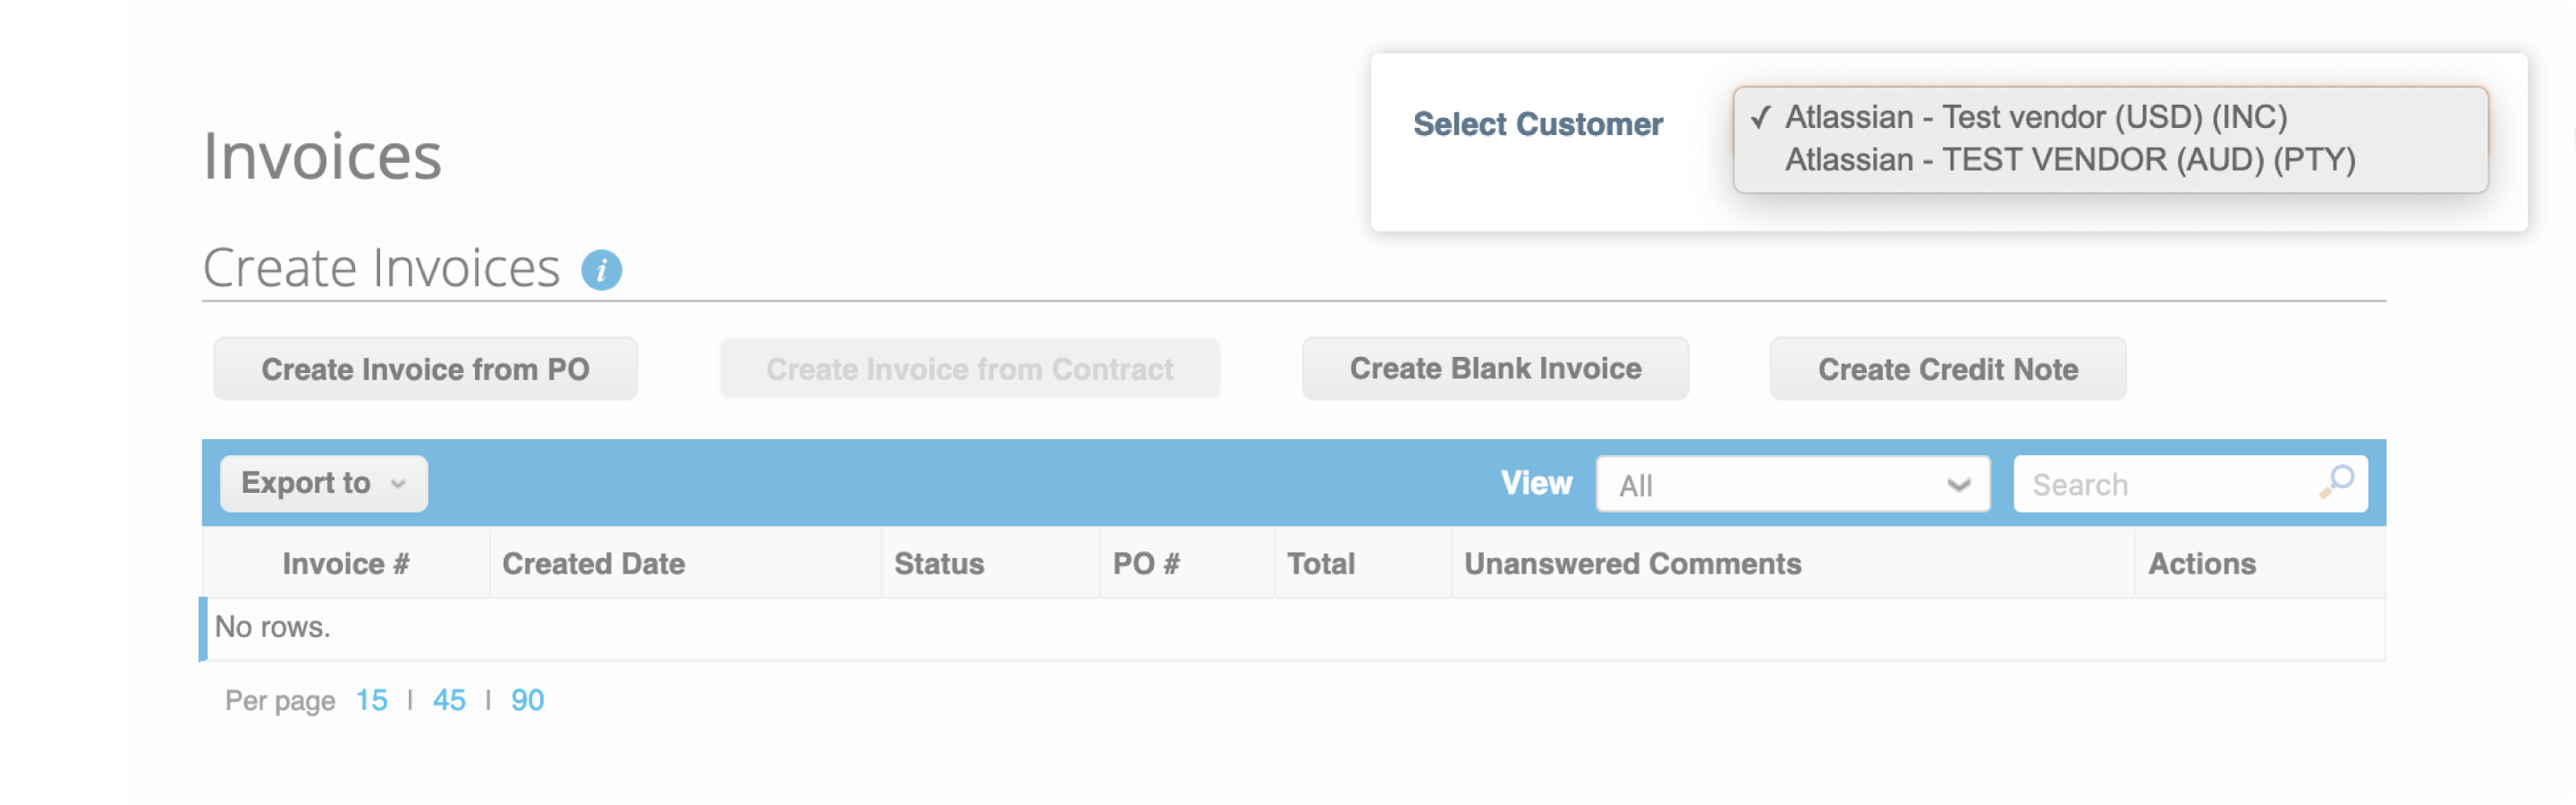 Supplier needs to go to the Invoices tab and click Create blank invoice